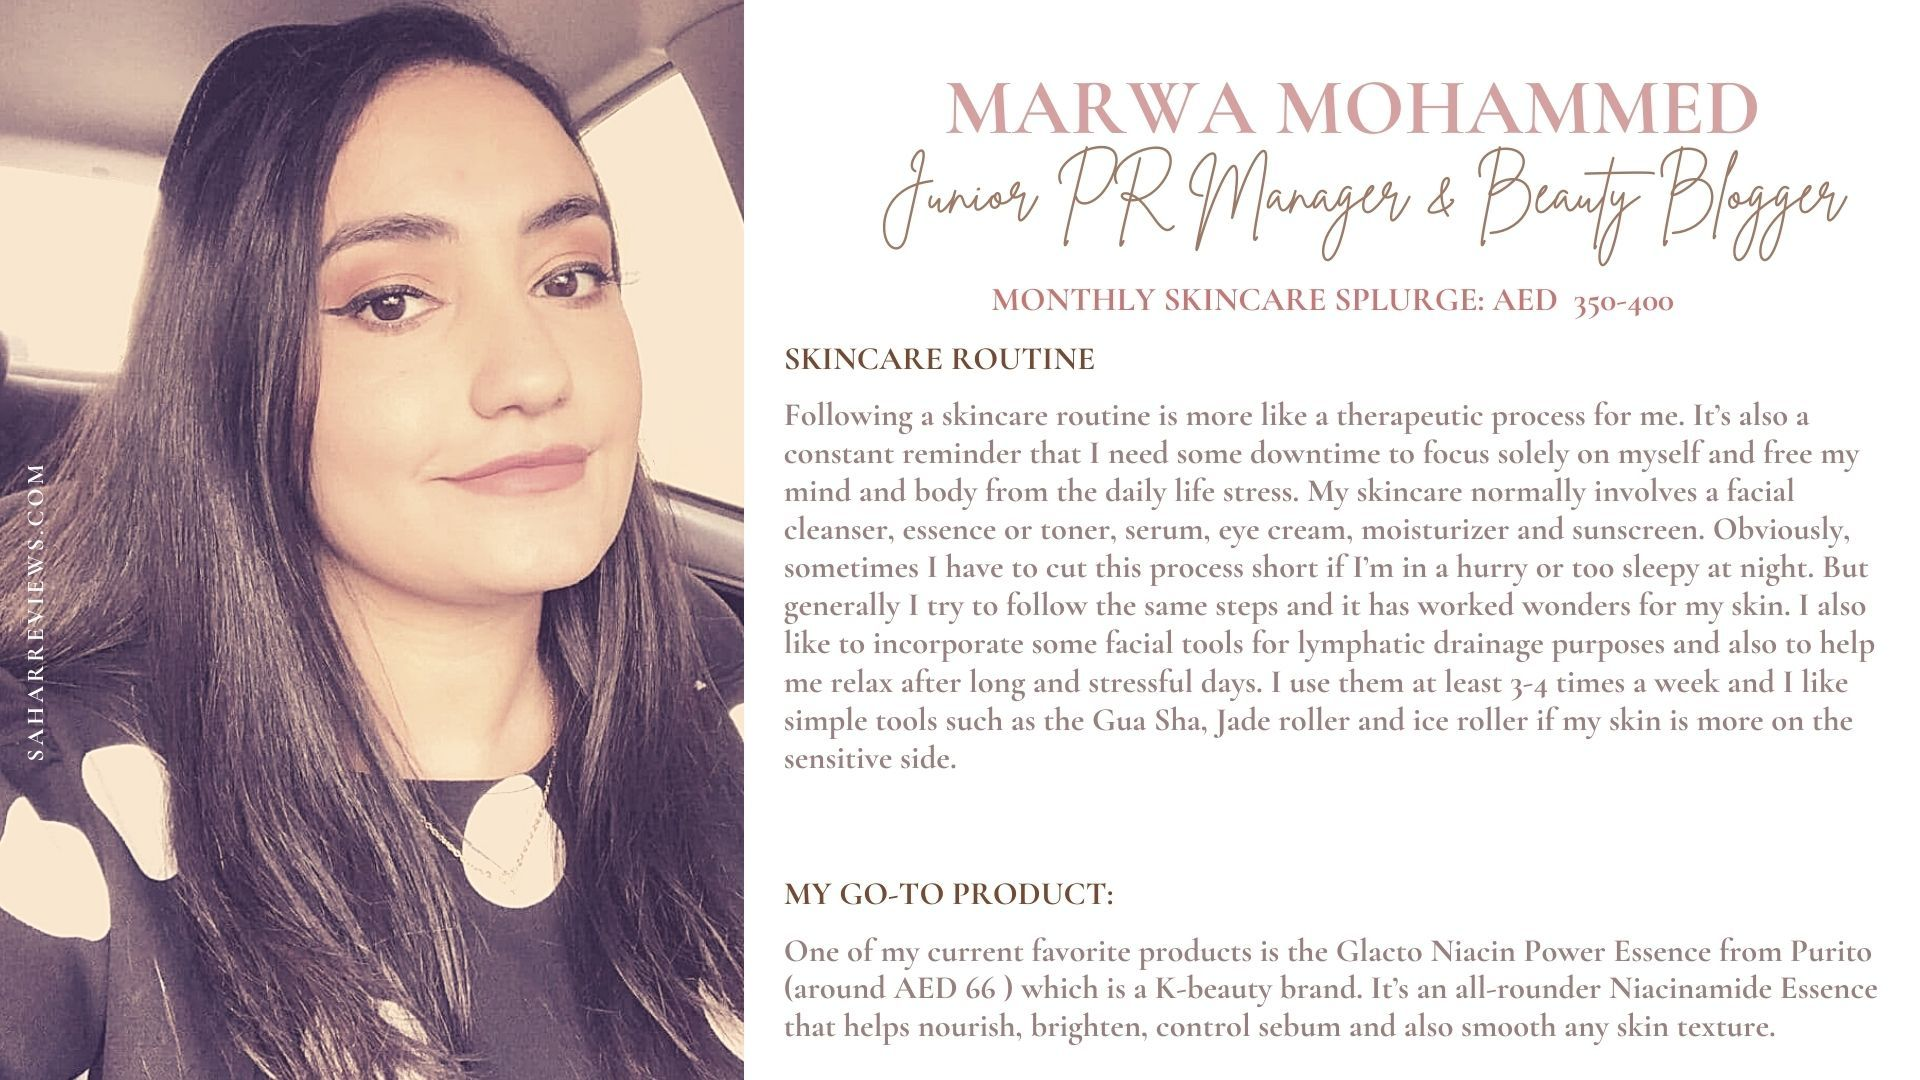 Marwa Mohammed, PR Manager, @thebeautybunny1, spending on skincare